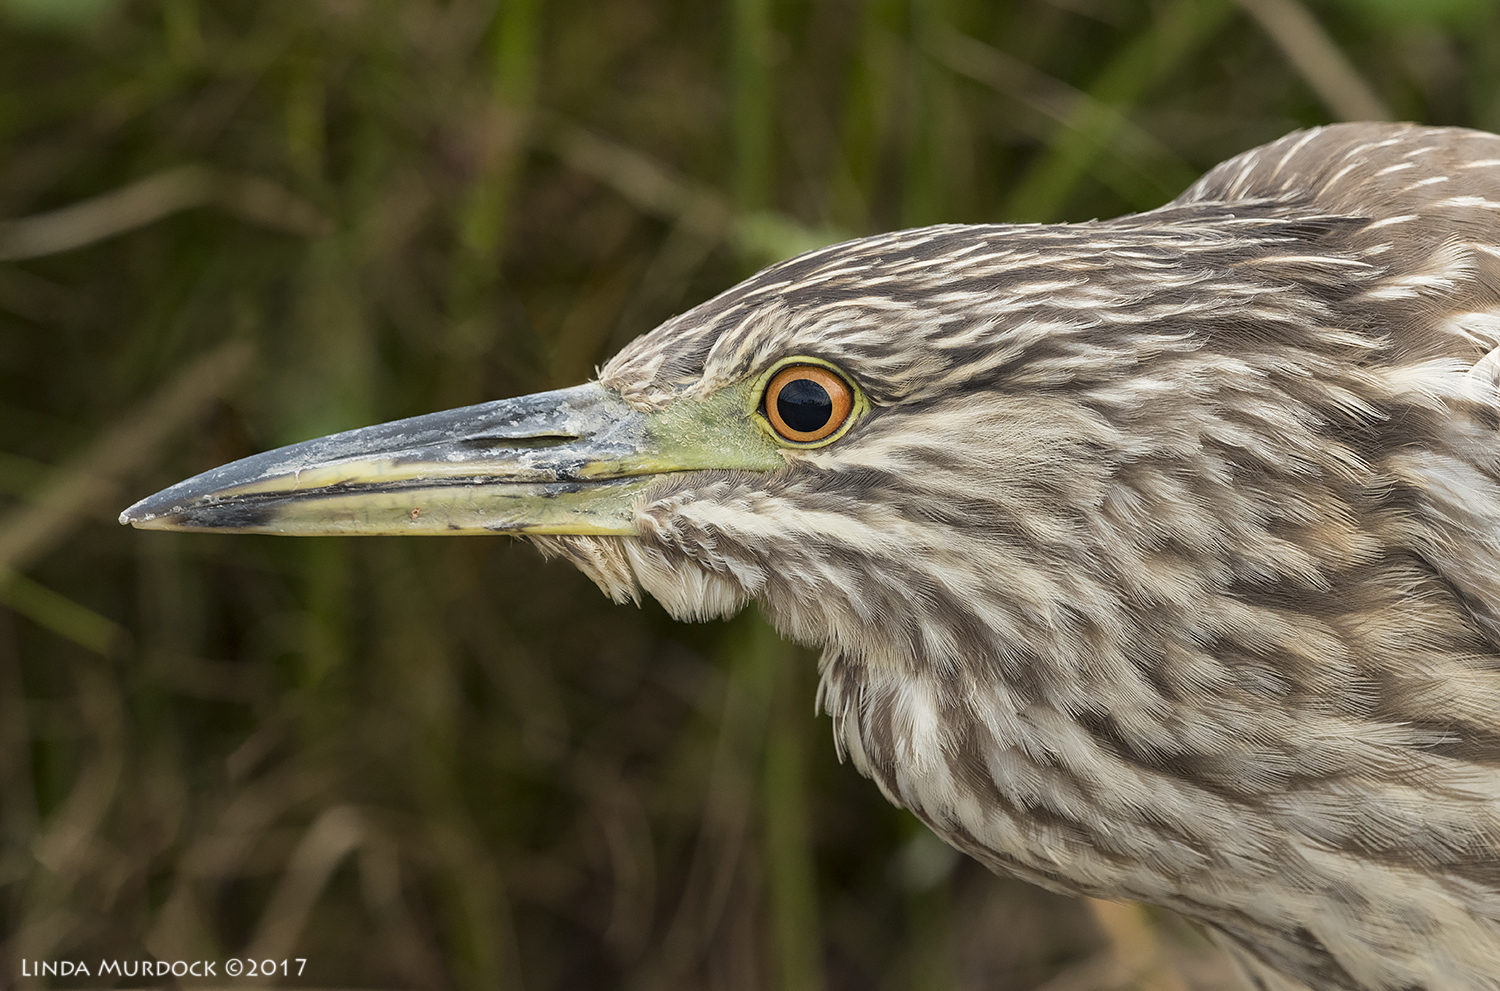 Juvenile Black Crown Night Heron ~ click all images to embiggen   Nikon D810 with NIKKOR 500mm f/4E VR + Nikon 1.4x TC ~ 1/1250   sec f/7.1 ISO 1250; braced in vehicle window